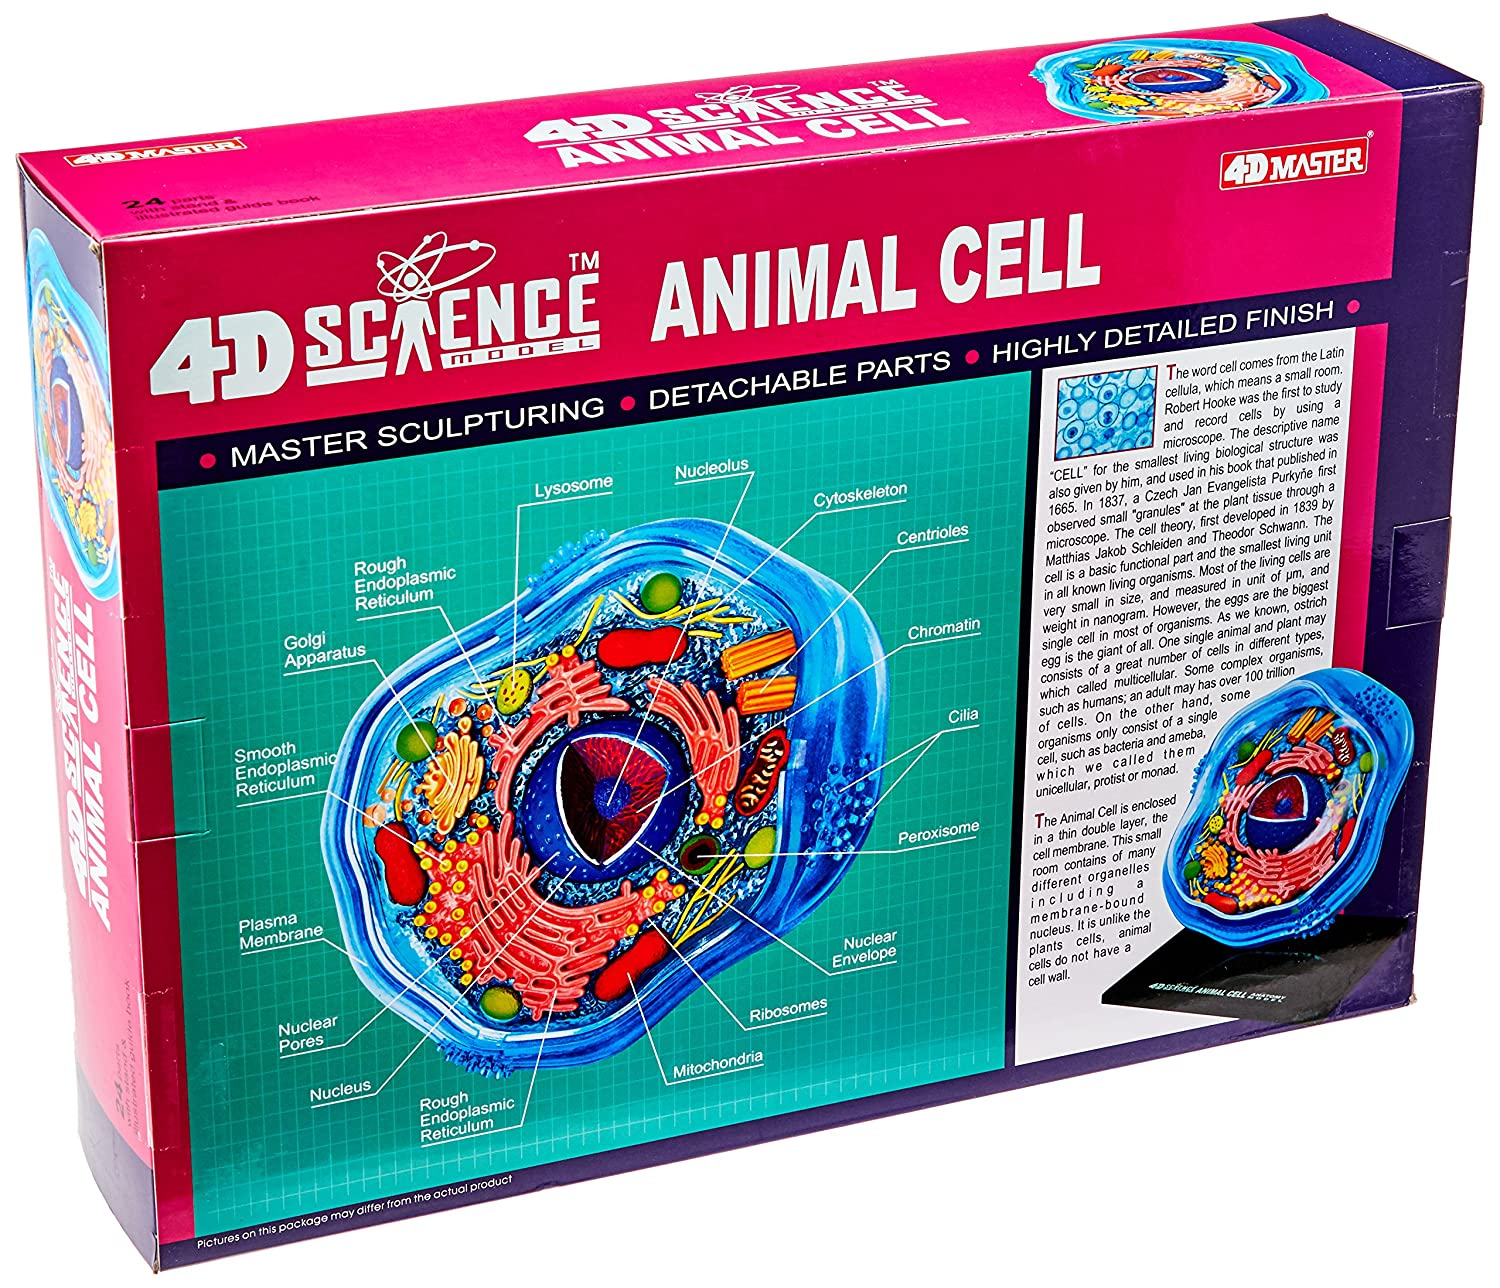 Famemaster 4d Science Animal Cell Anatomy Model Toys Not Labeled 3d Diagram Project Parts Structure Games